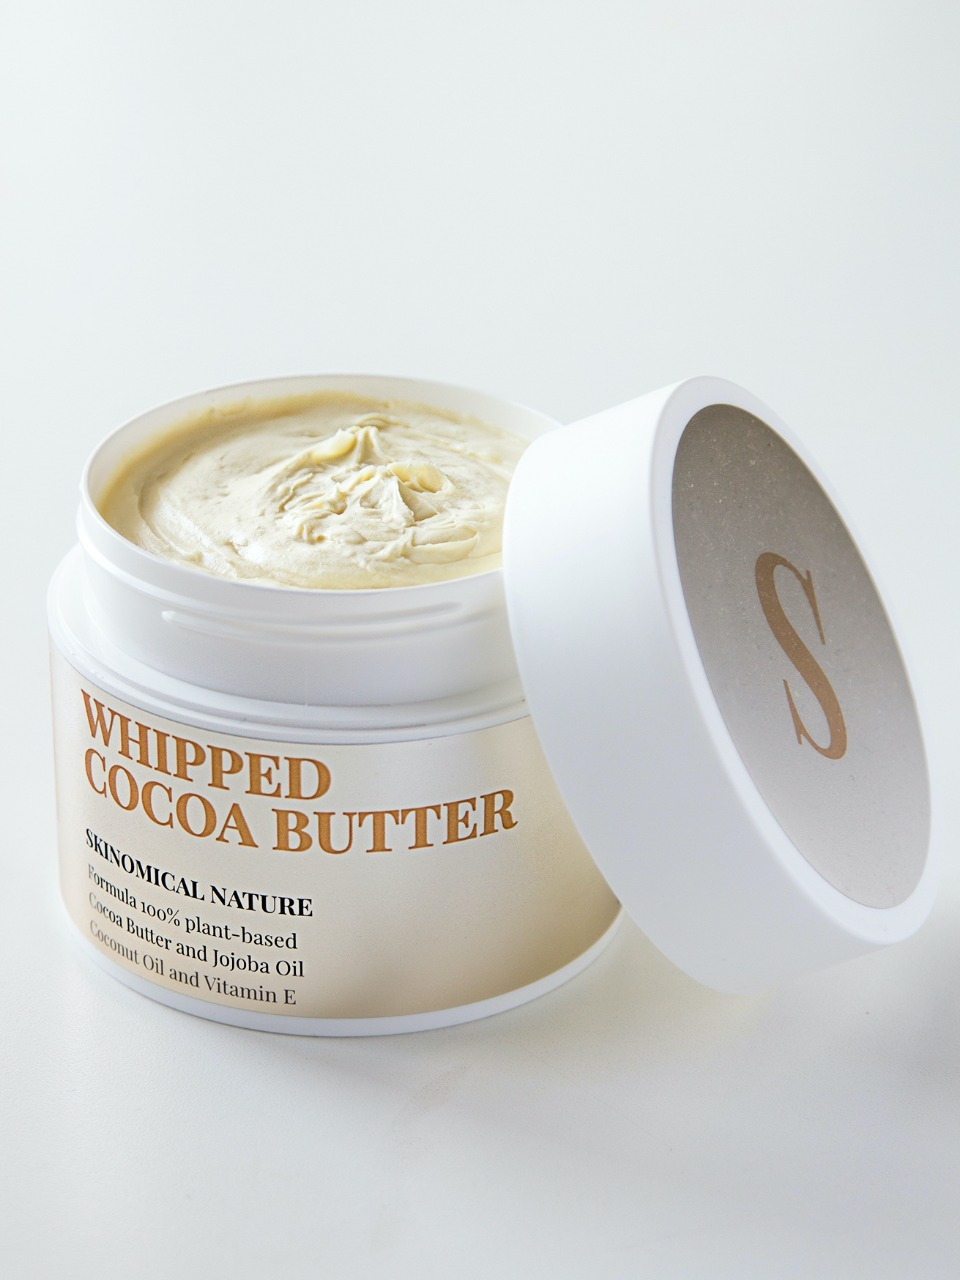 Лосьоны для тела Взбитое масло Какао Whipped Cocoa Butter, 200 мл uploads_photos__SKINOMICAL__790218-_SKINOMICAL___Взбитое_масло_Какао_Whipped_Cocoa_Butter__200_м.jpg